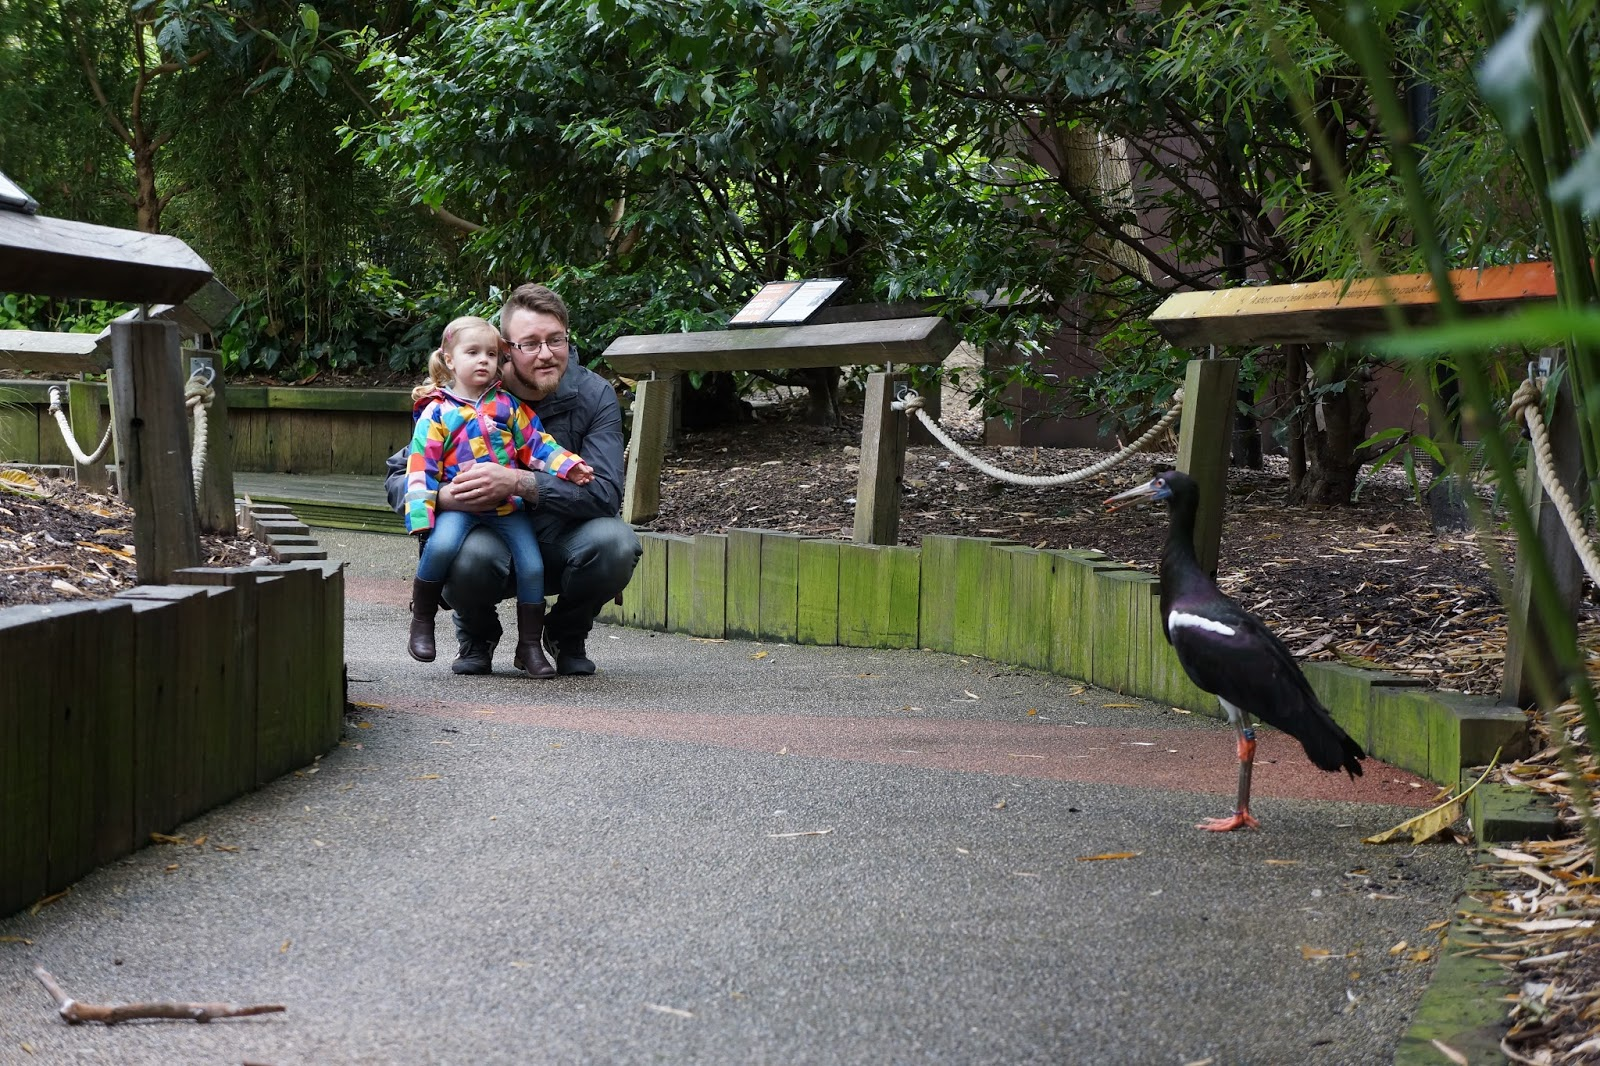 father and daughter watching a bird on a walking path in london zoo